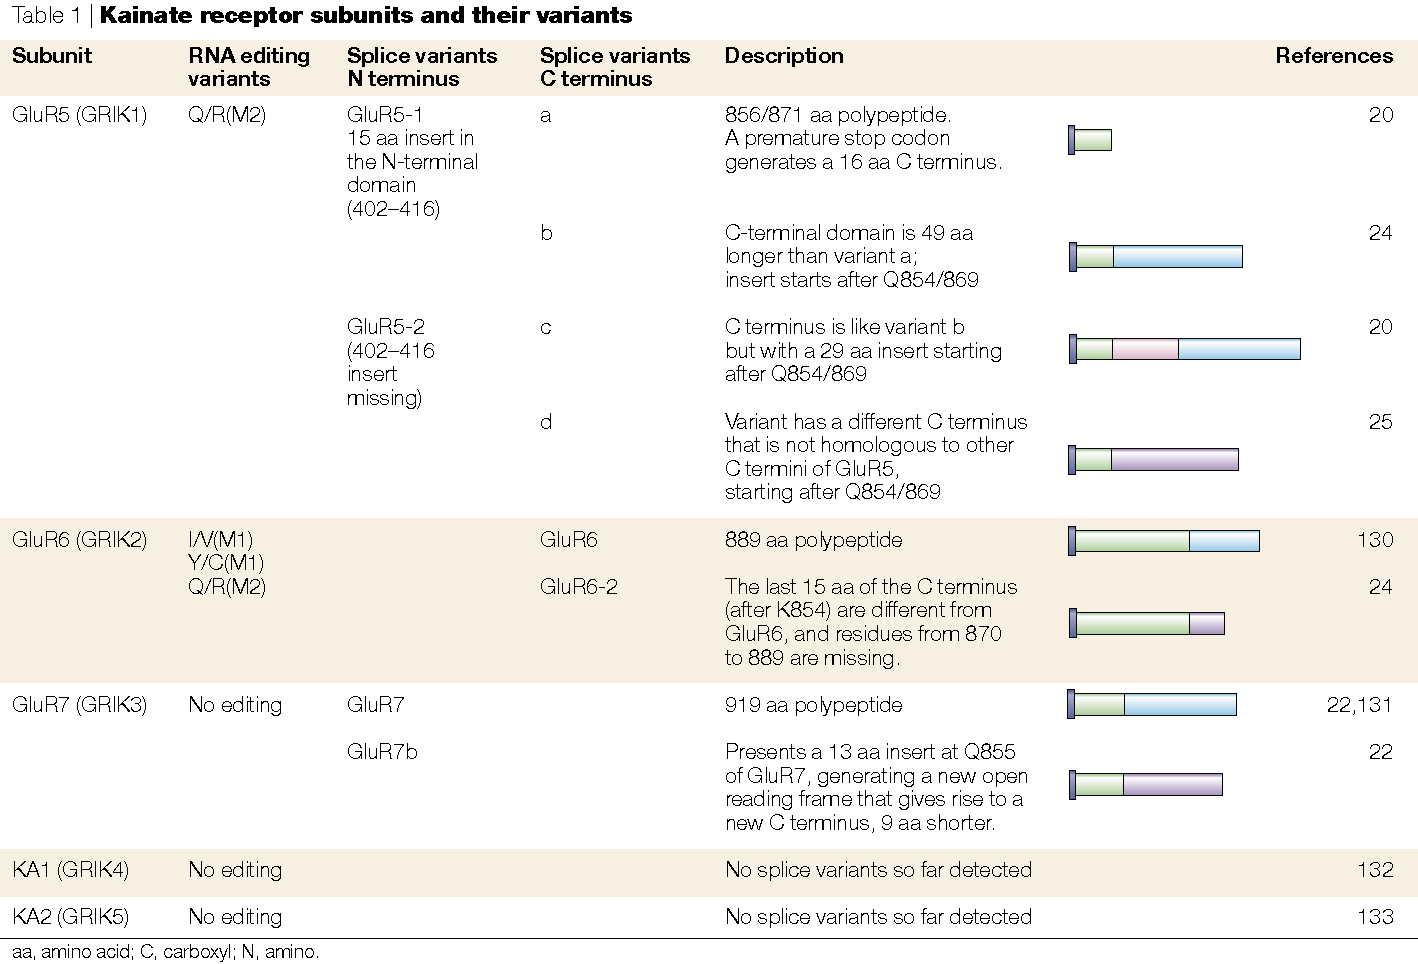 Roles and rules of kainate receptors in synaptic